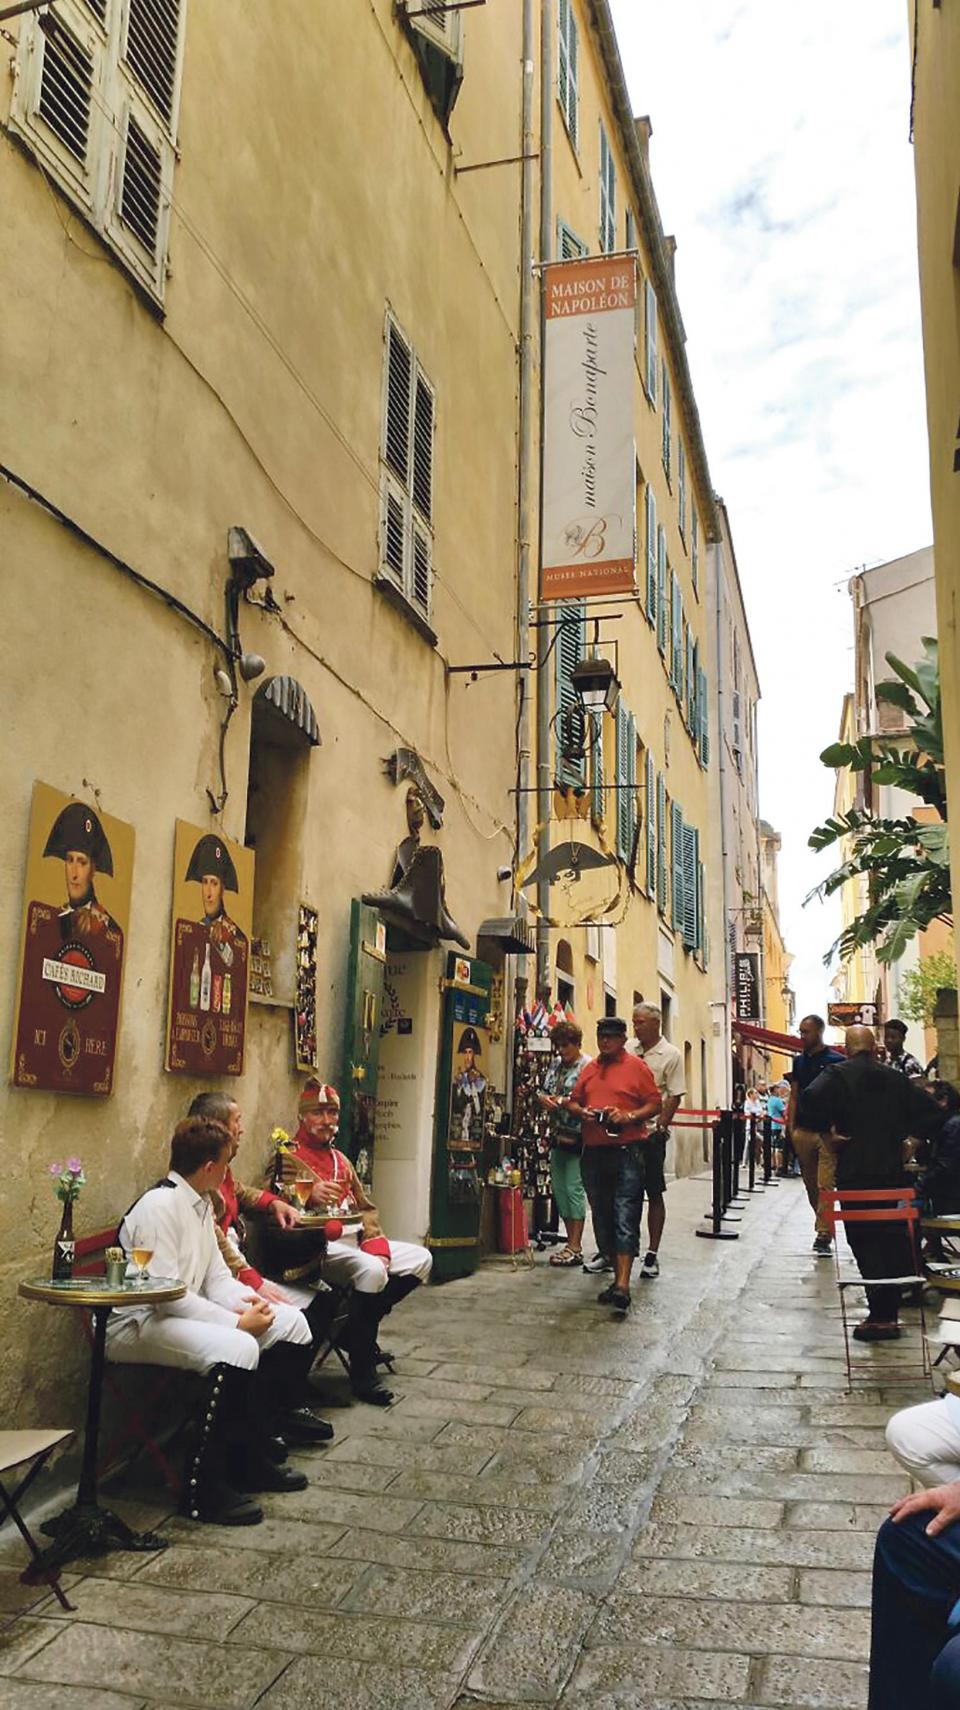 Rue St Charles in Ajaccio, capital of Corsica, showing the house where Napoleon Bonaparte was born on August 15, 1769, 250 years ago. Next door is Maison Bonaparte, a national museum, and a popular outlet selling Napoleonic paraphernalia and souvenirs.